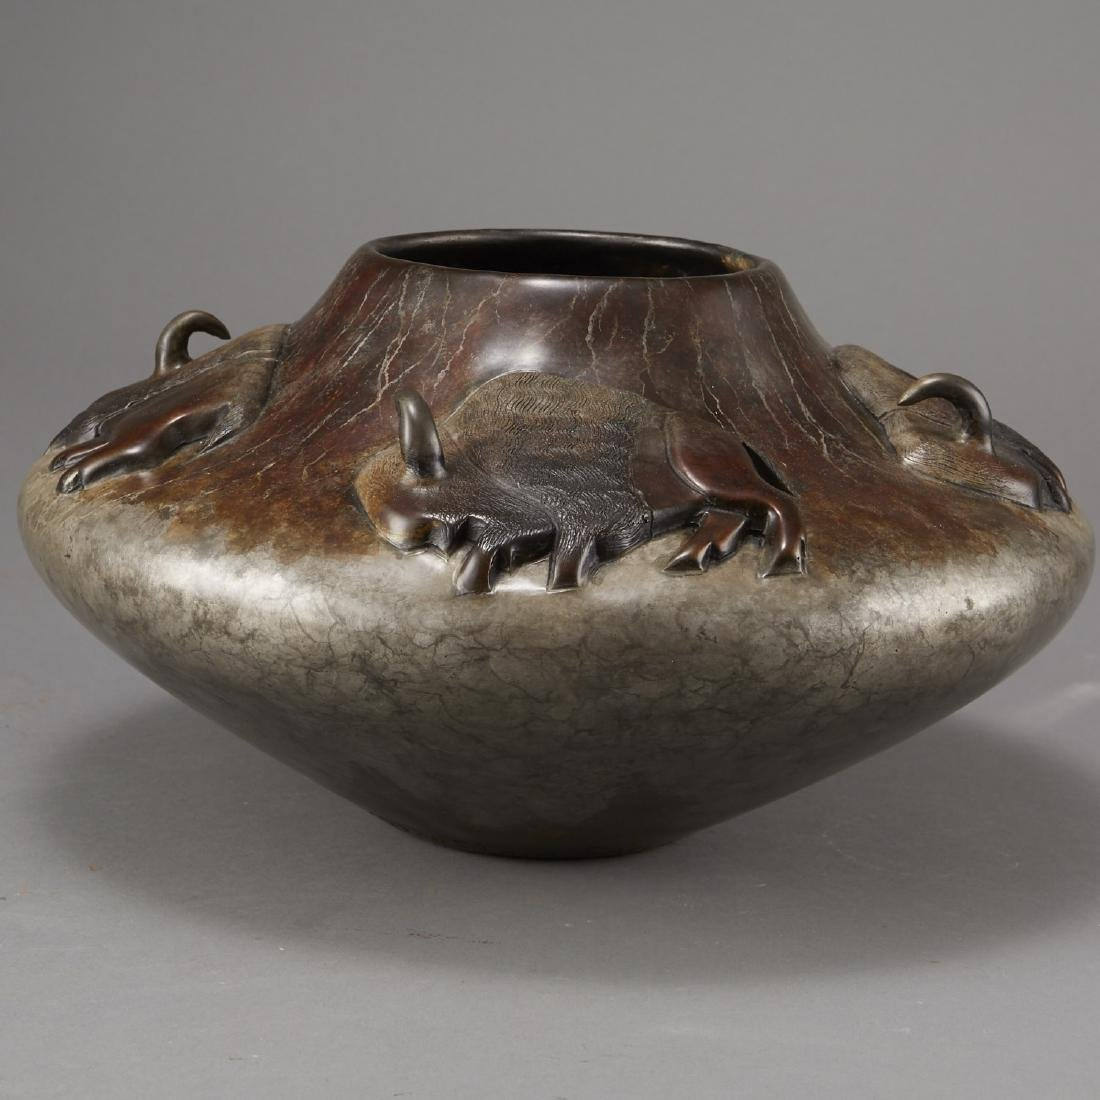 Pahponee Bronze Vessel In a Sacred Manner I Walk - 4